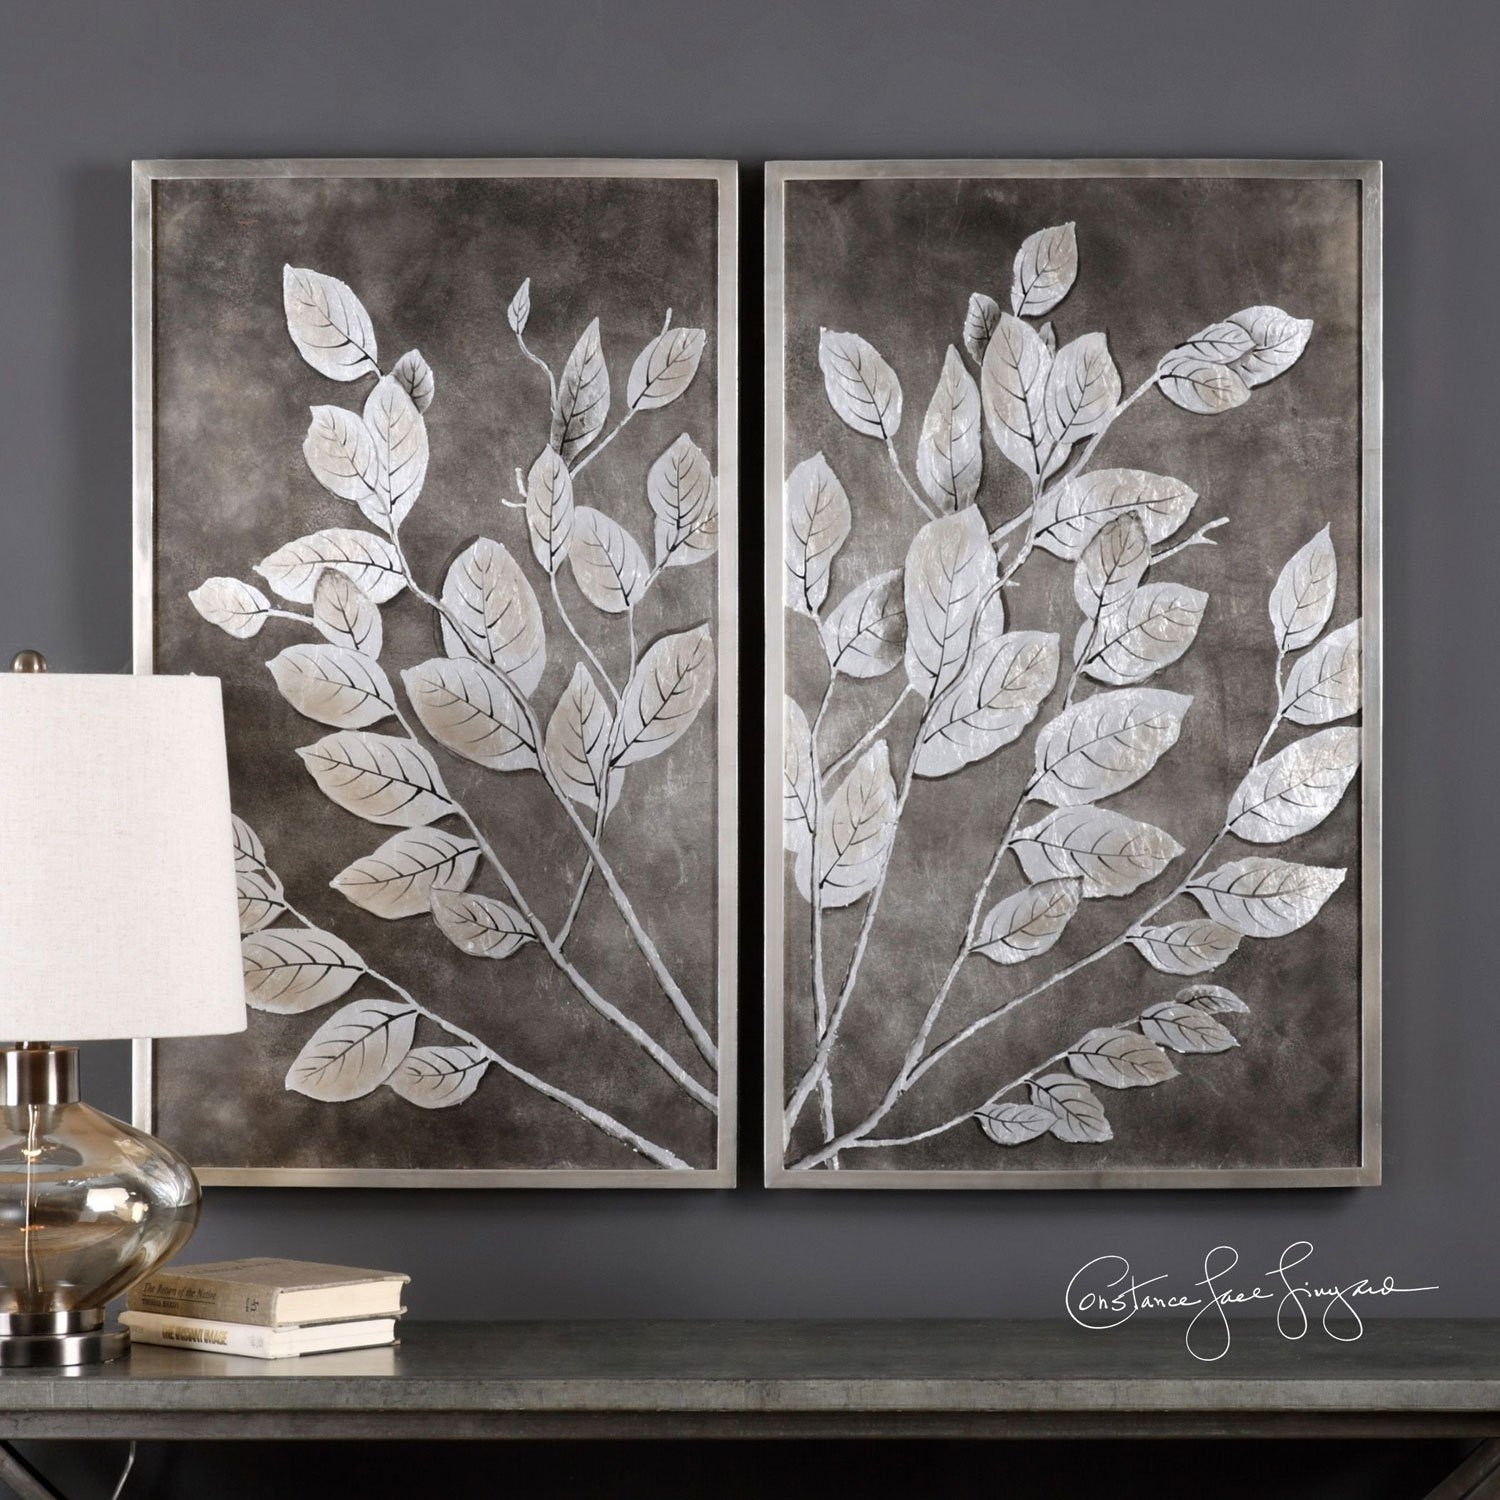 Money Tree Framed Art, Set Of 2 Uttermost Wall Art Wall, Framed Wall For Set Of 2 Framed Wall Art (View 9 of 20)